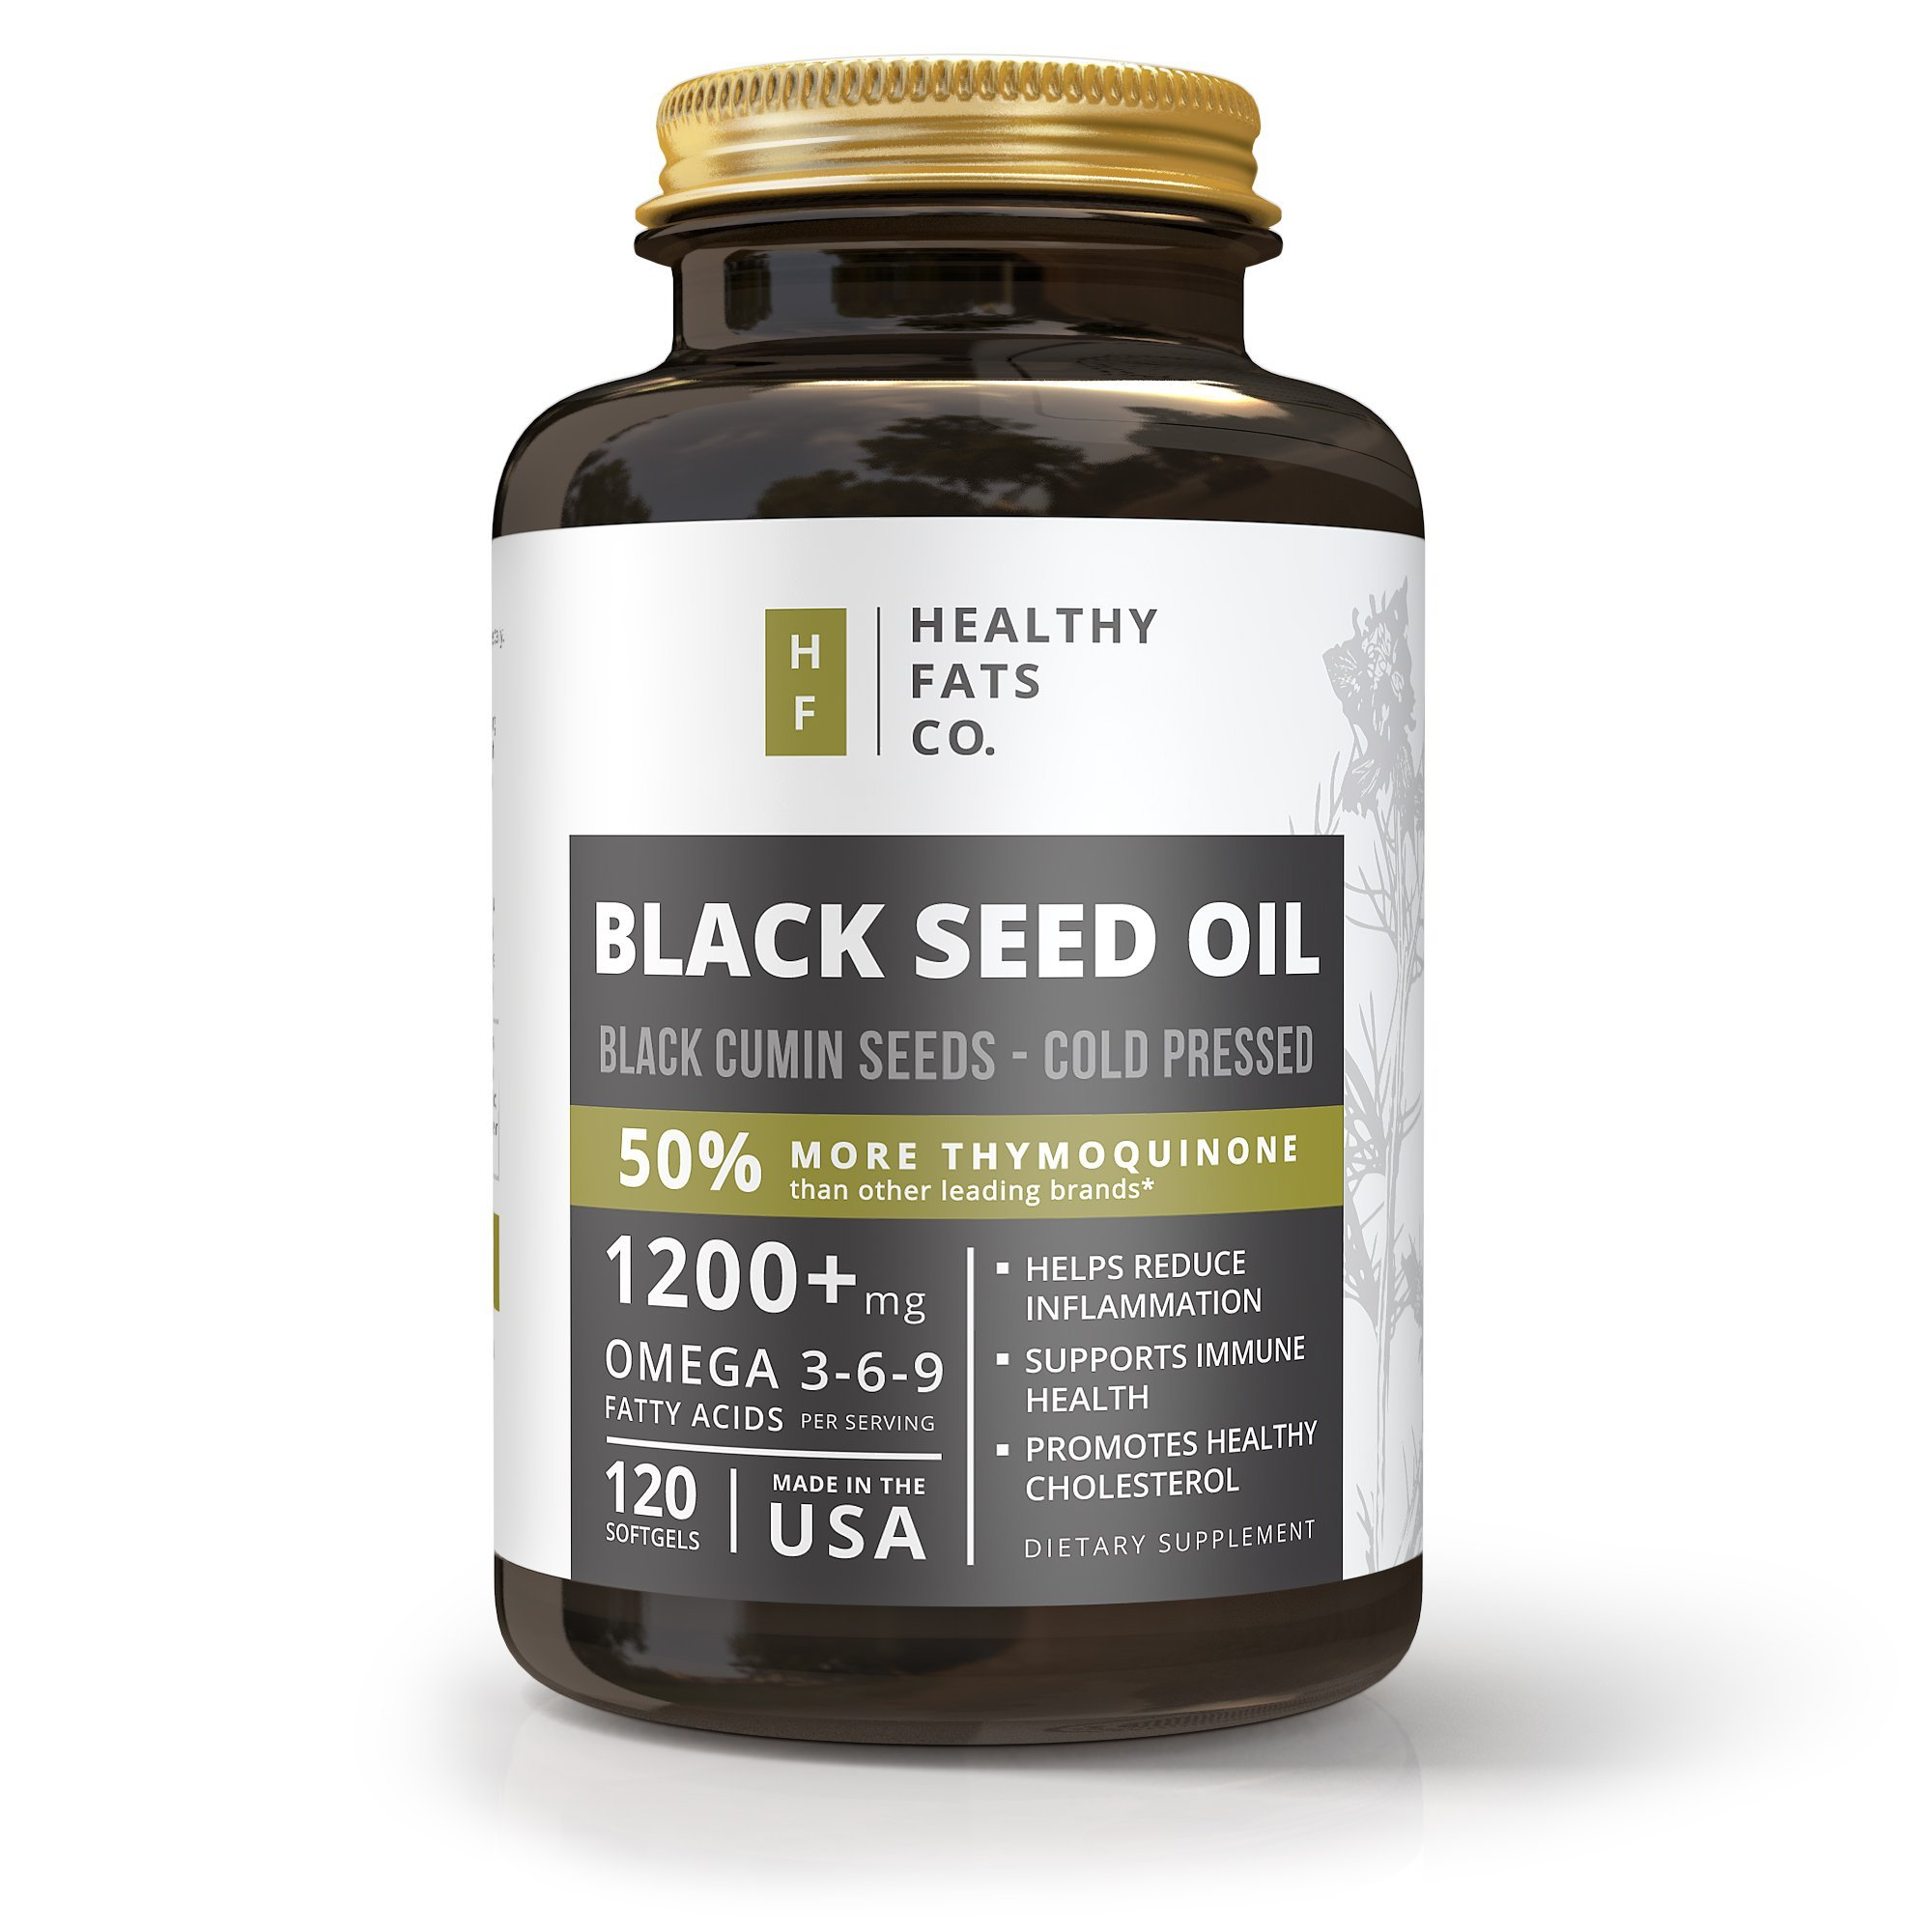 Premium Organic Black Seed Oil Softgel Capsules, 1200 Milligrams Per Serving, Made from Cold Pressed Black Cumin Seeds, Highest in Thymoquinone, Pure Nigella Sativa by the Healthy Fats Co 120 Softgels